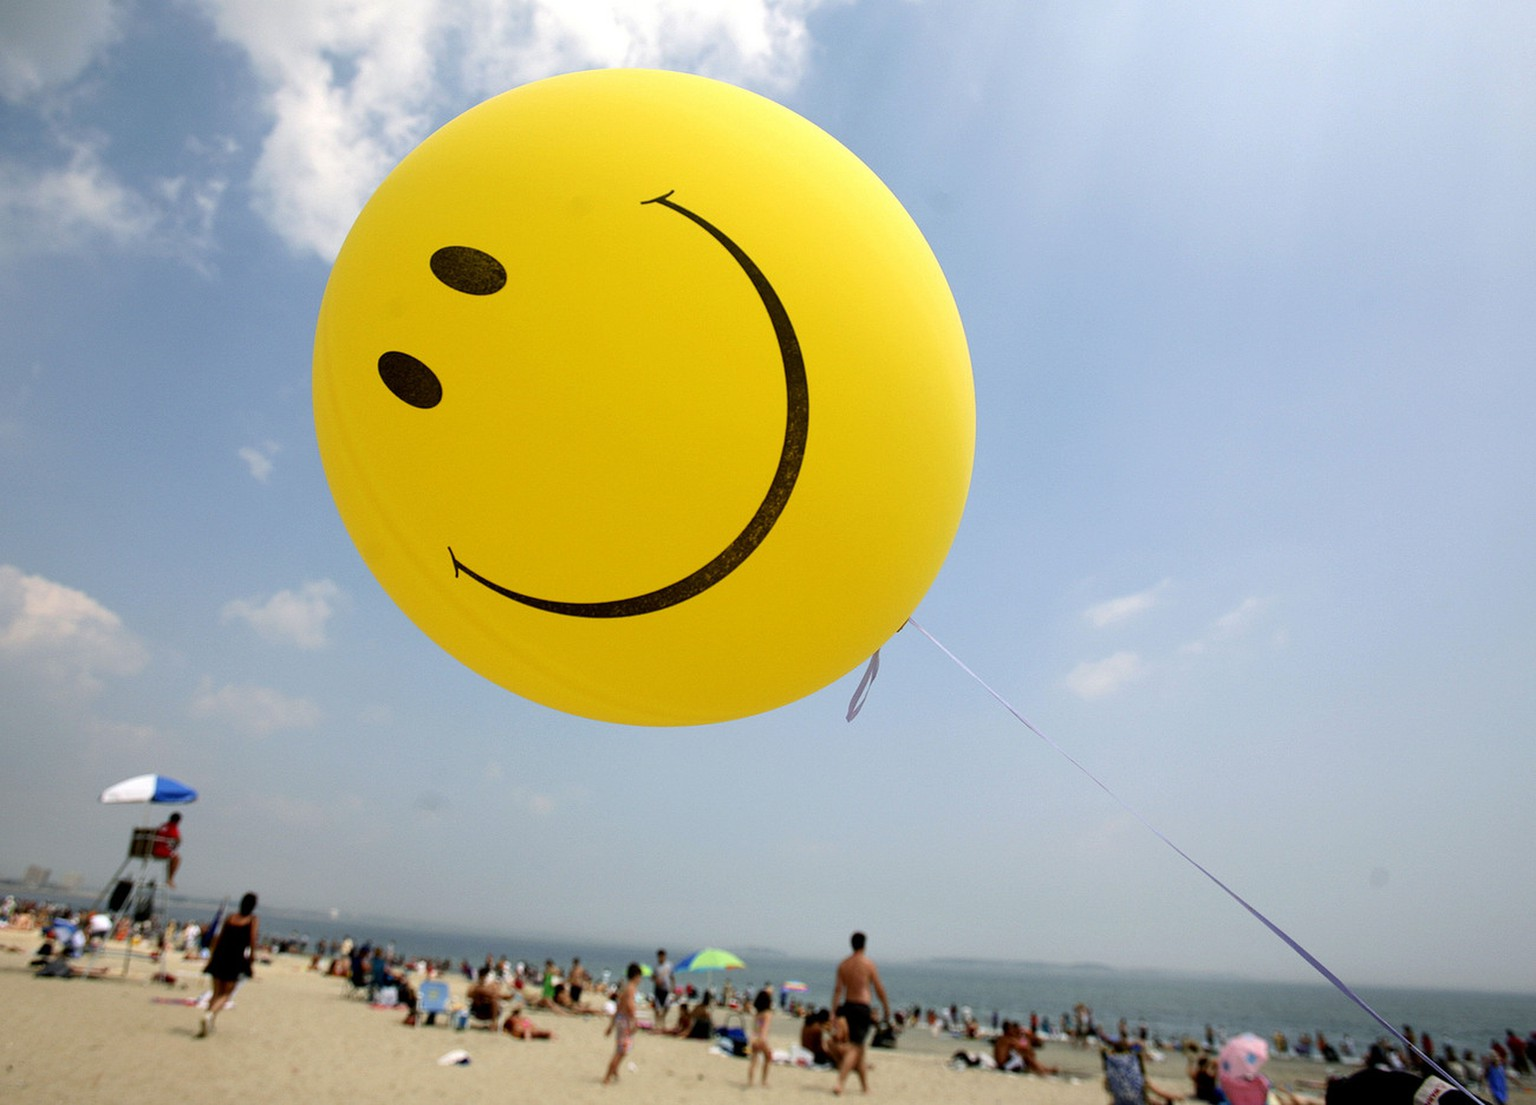 A smiley-face ballon floats over Revere Beach in Revere, Mass., as beachgoers head for the water, Sunday, July 16, 2006. (AP Photo/Michael Dwyer)